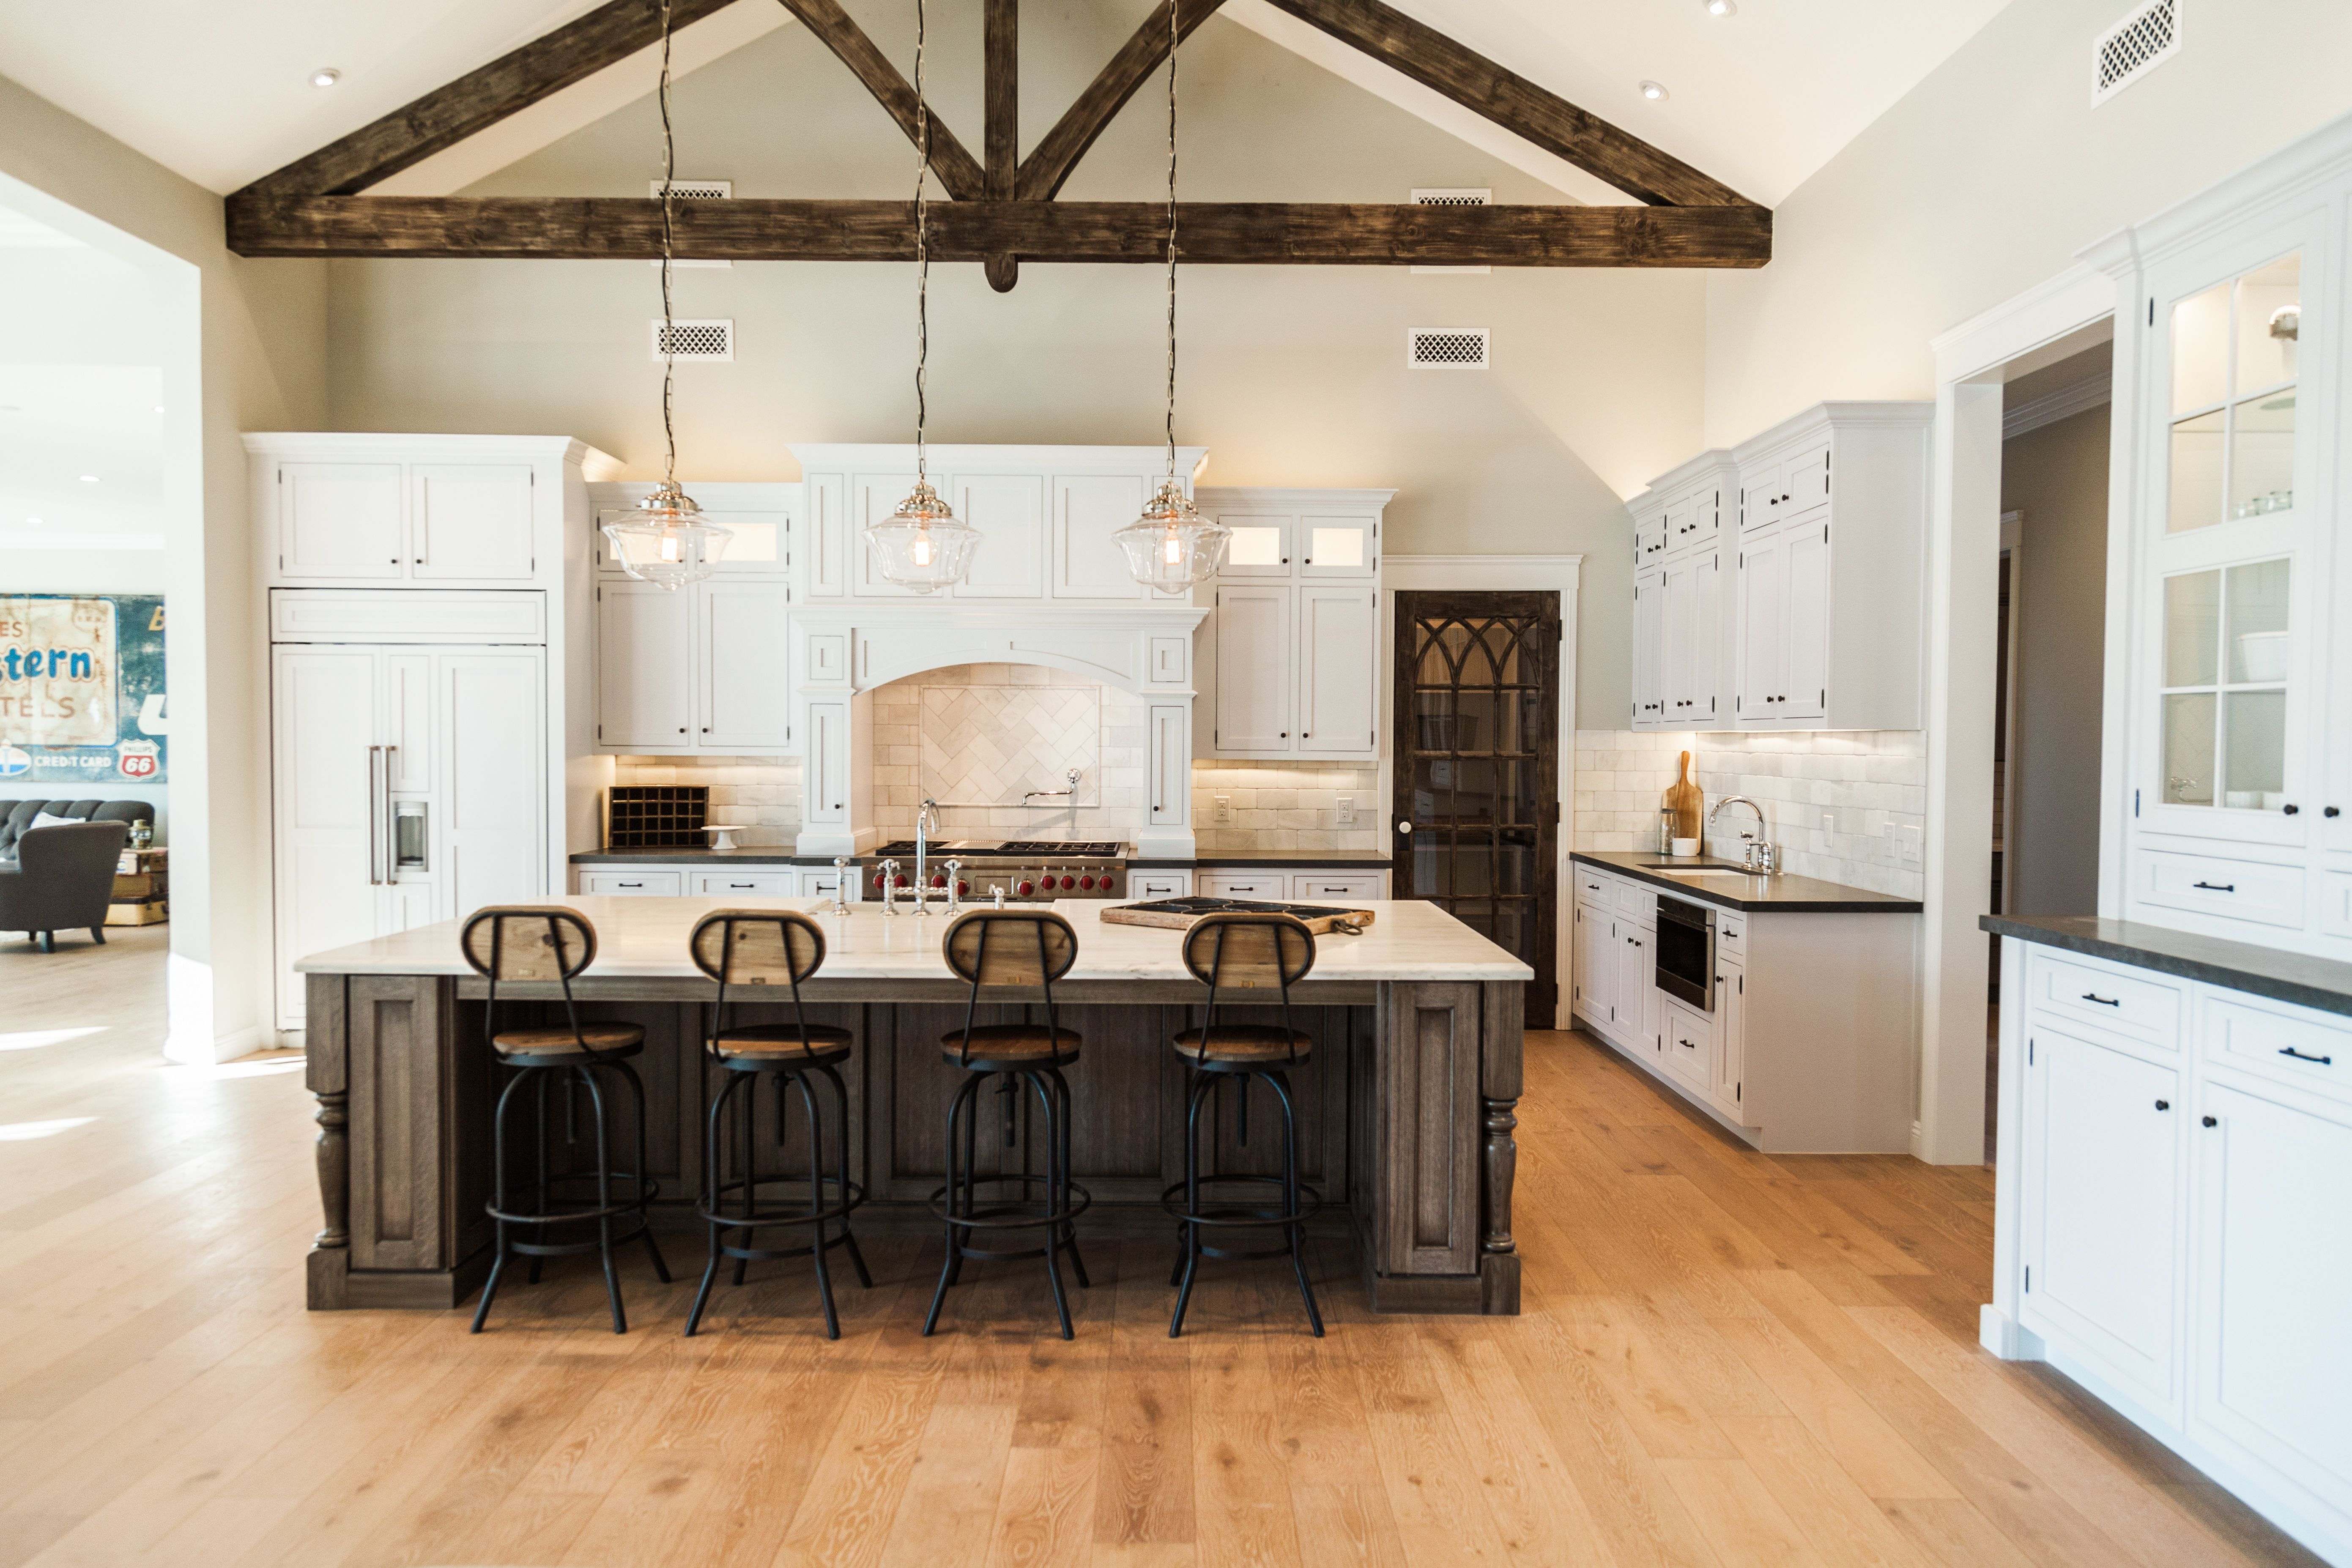 open kitchen concept with exposed decorative beam detail by rafterhouse farmhouse kitchen on kitchen remodel modern farmhouse id=70701